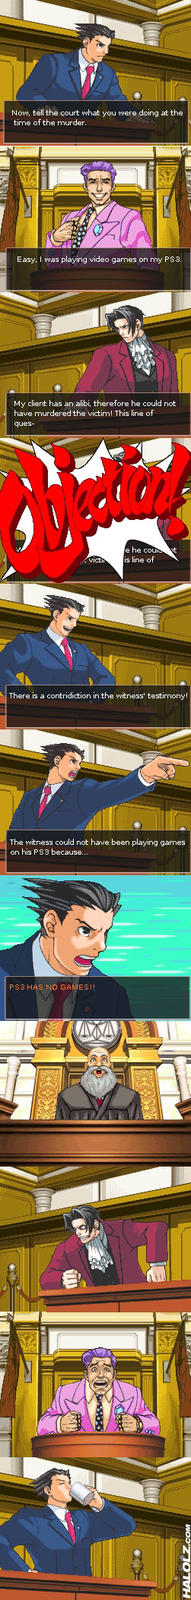 phoenixwright-ps3-nogames.jpg